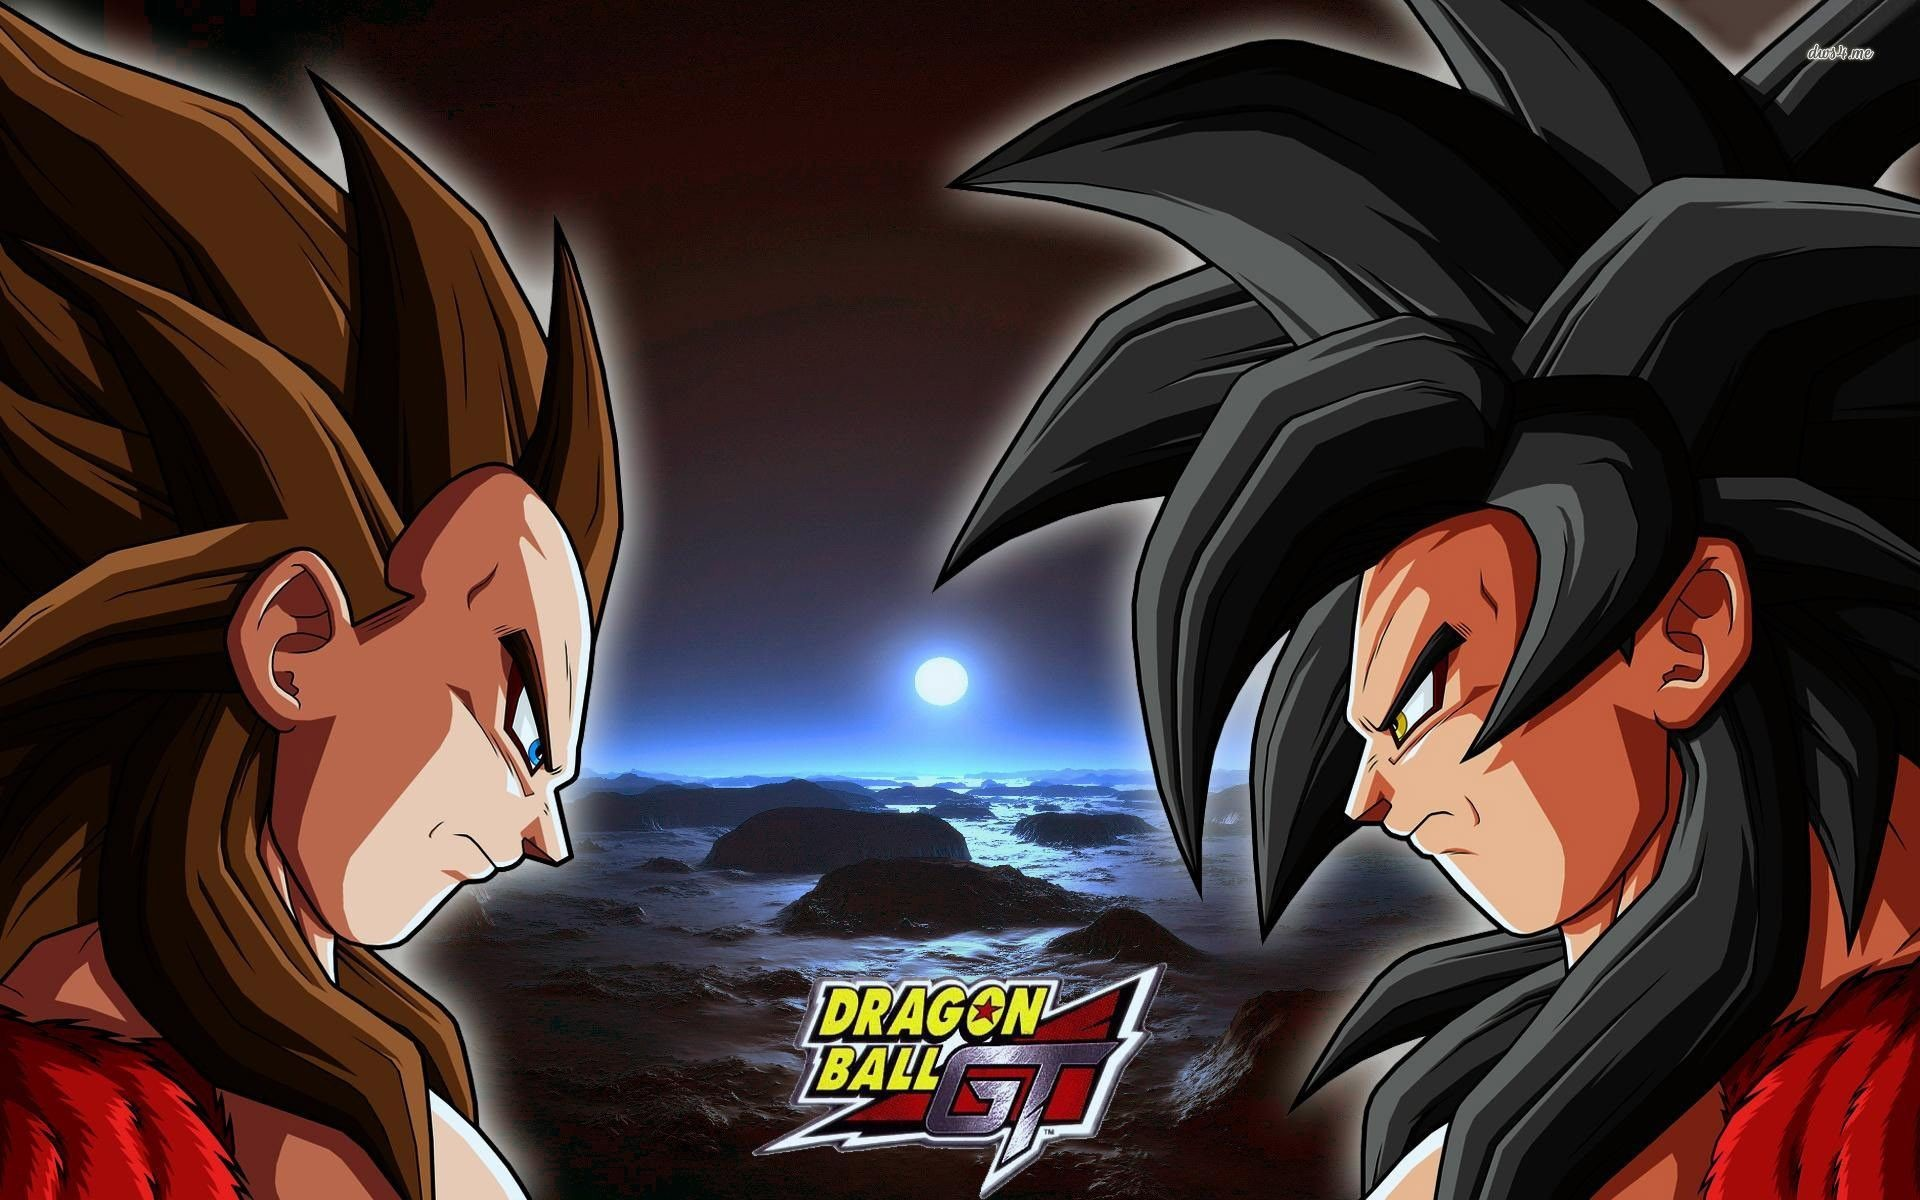 Dragon Ball Gt Online Games ~ Anime Wallpaper & Pictures in HD